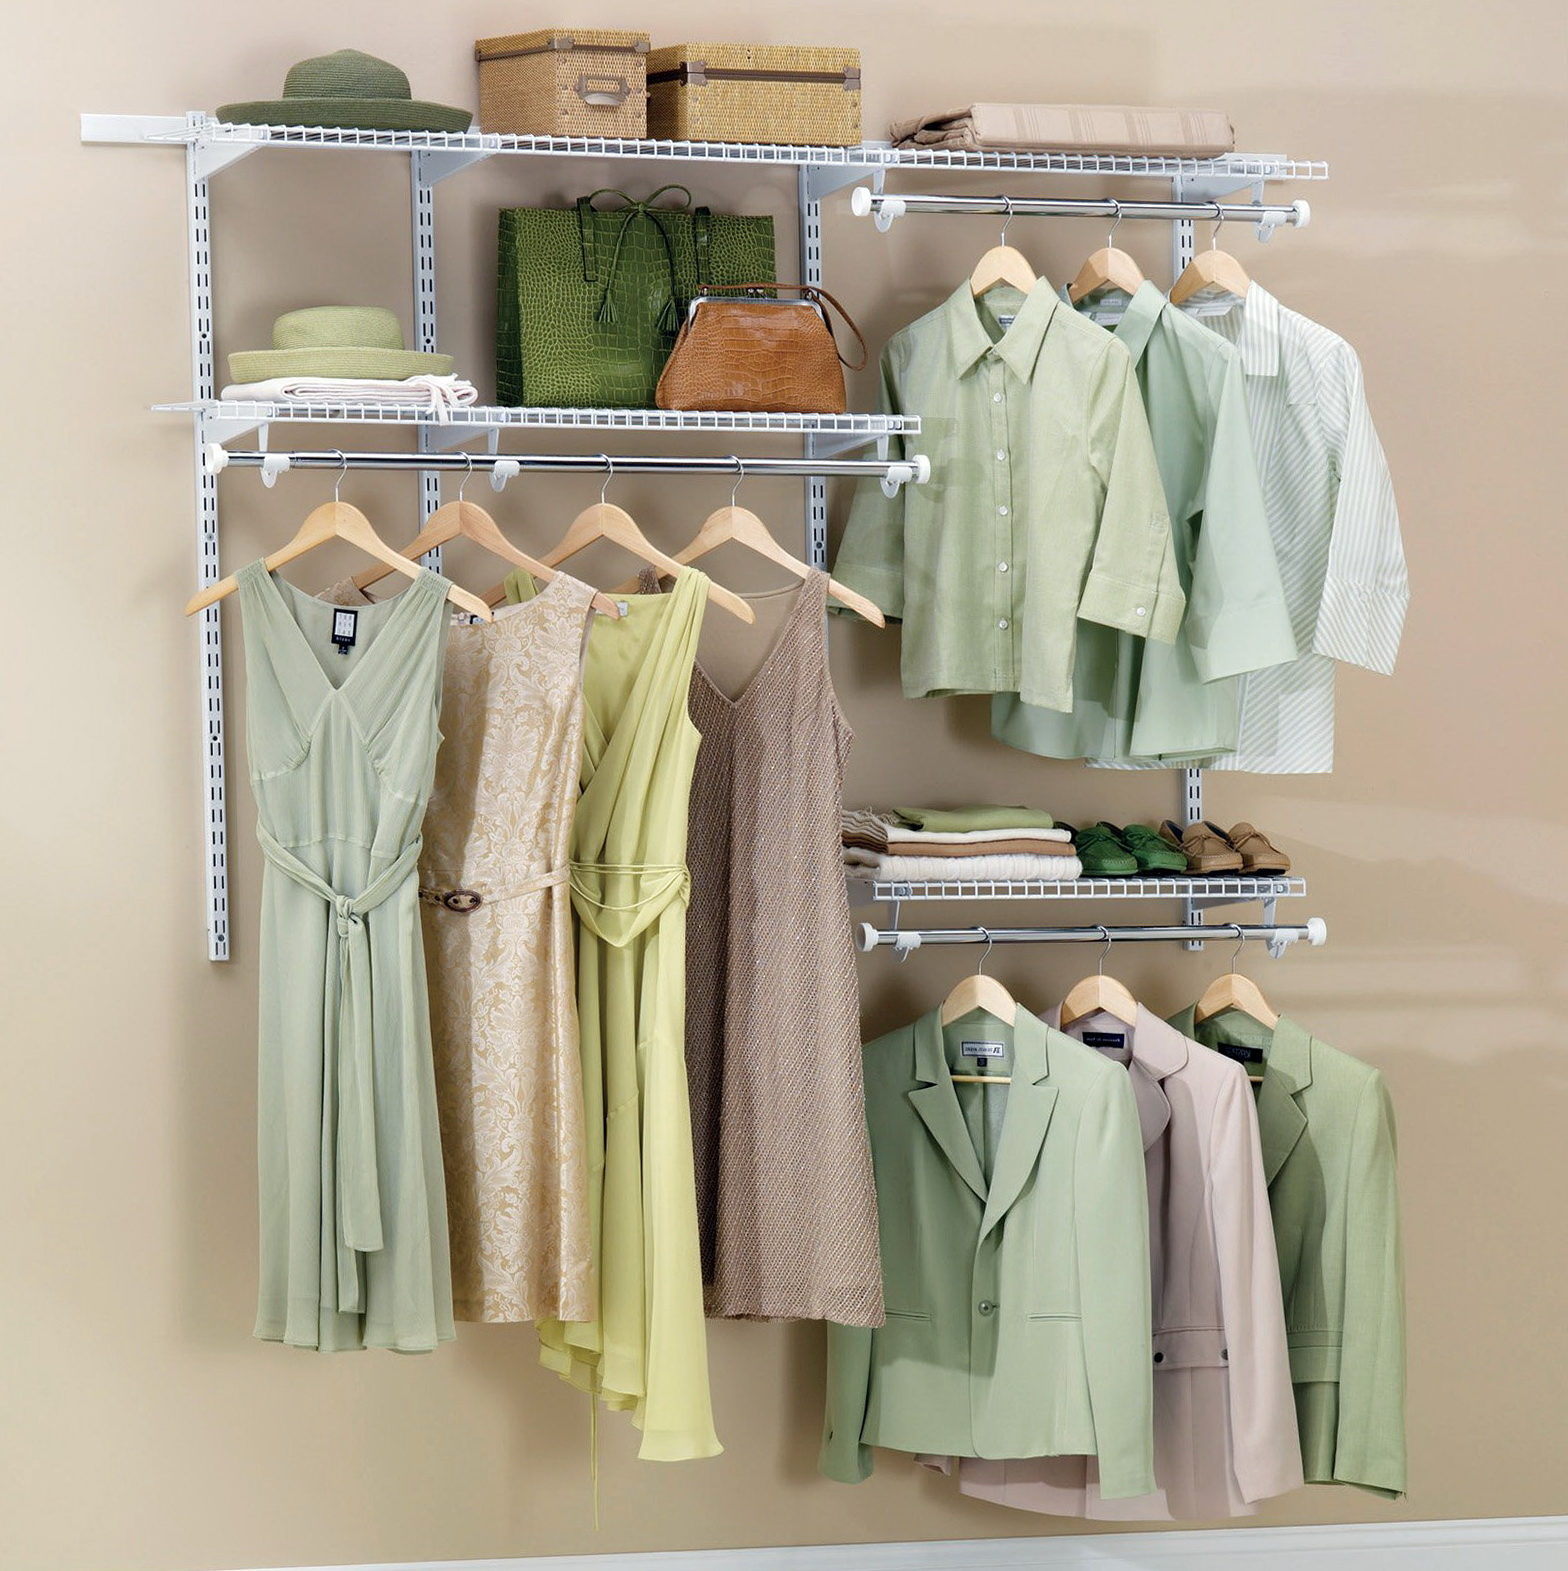 Rubbermaid Closet Shelving Brackets